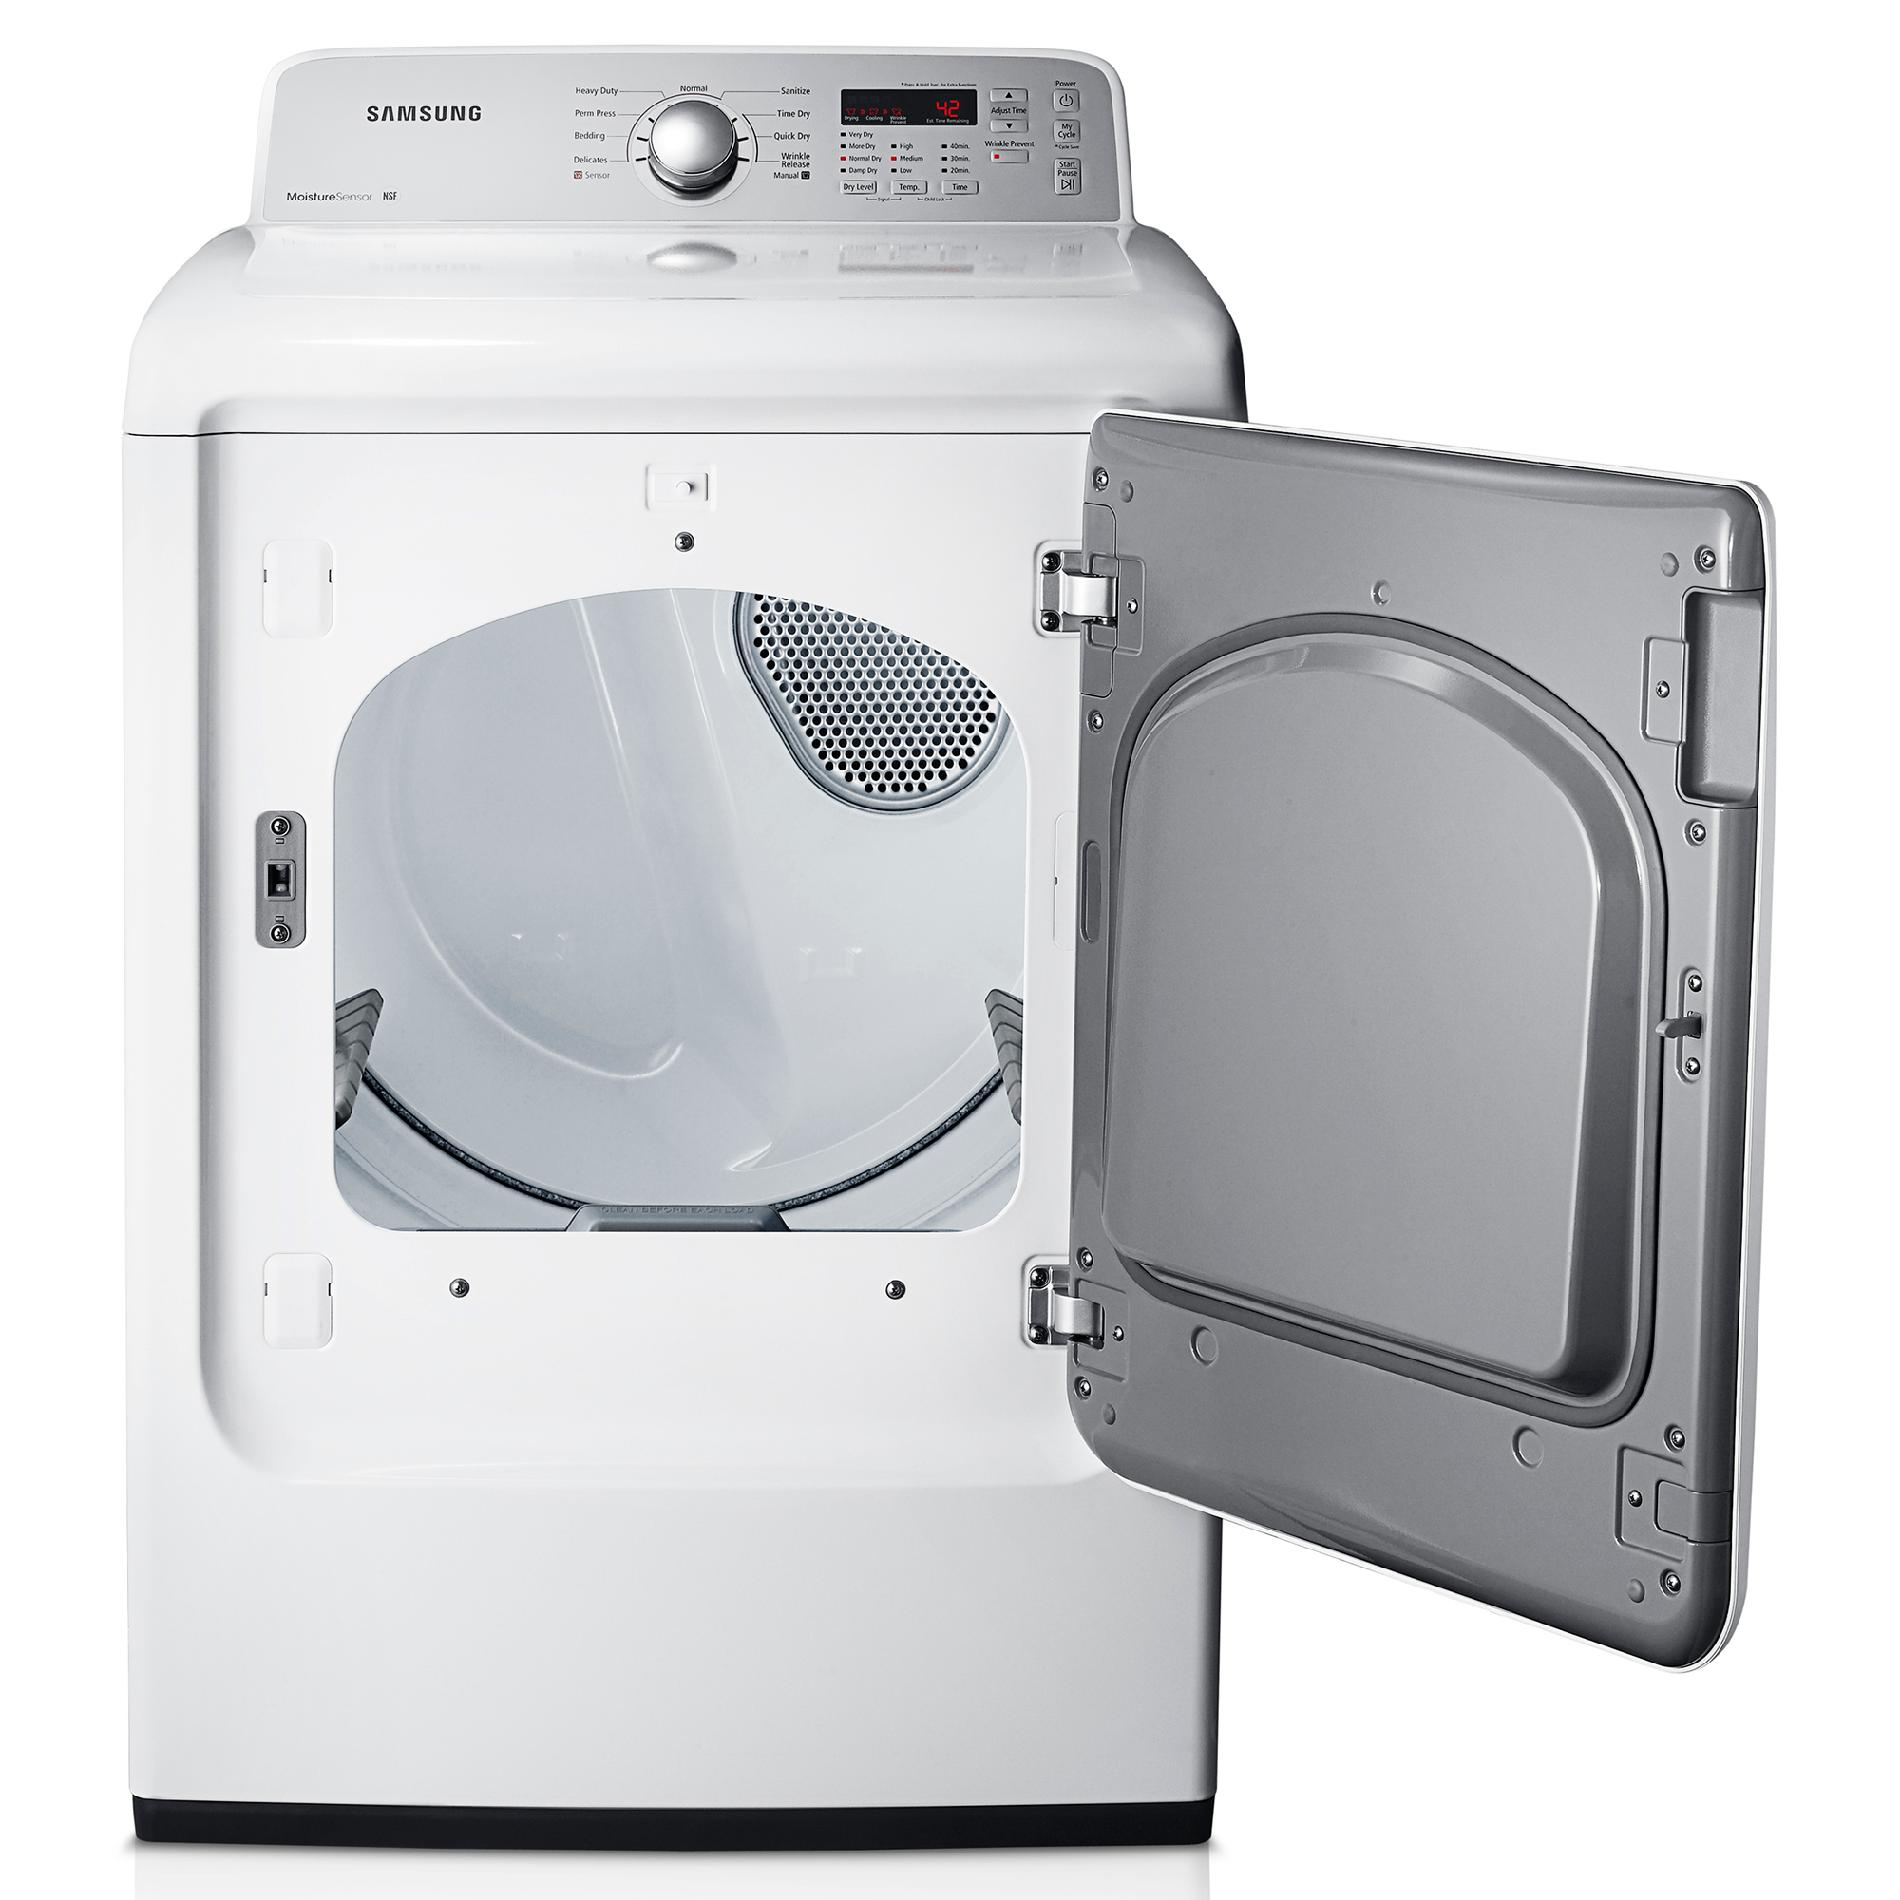 Samsung 7.2 cu. ft. Gas Dryer - White